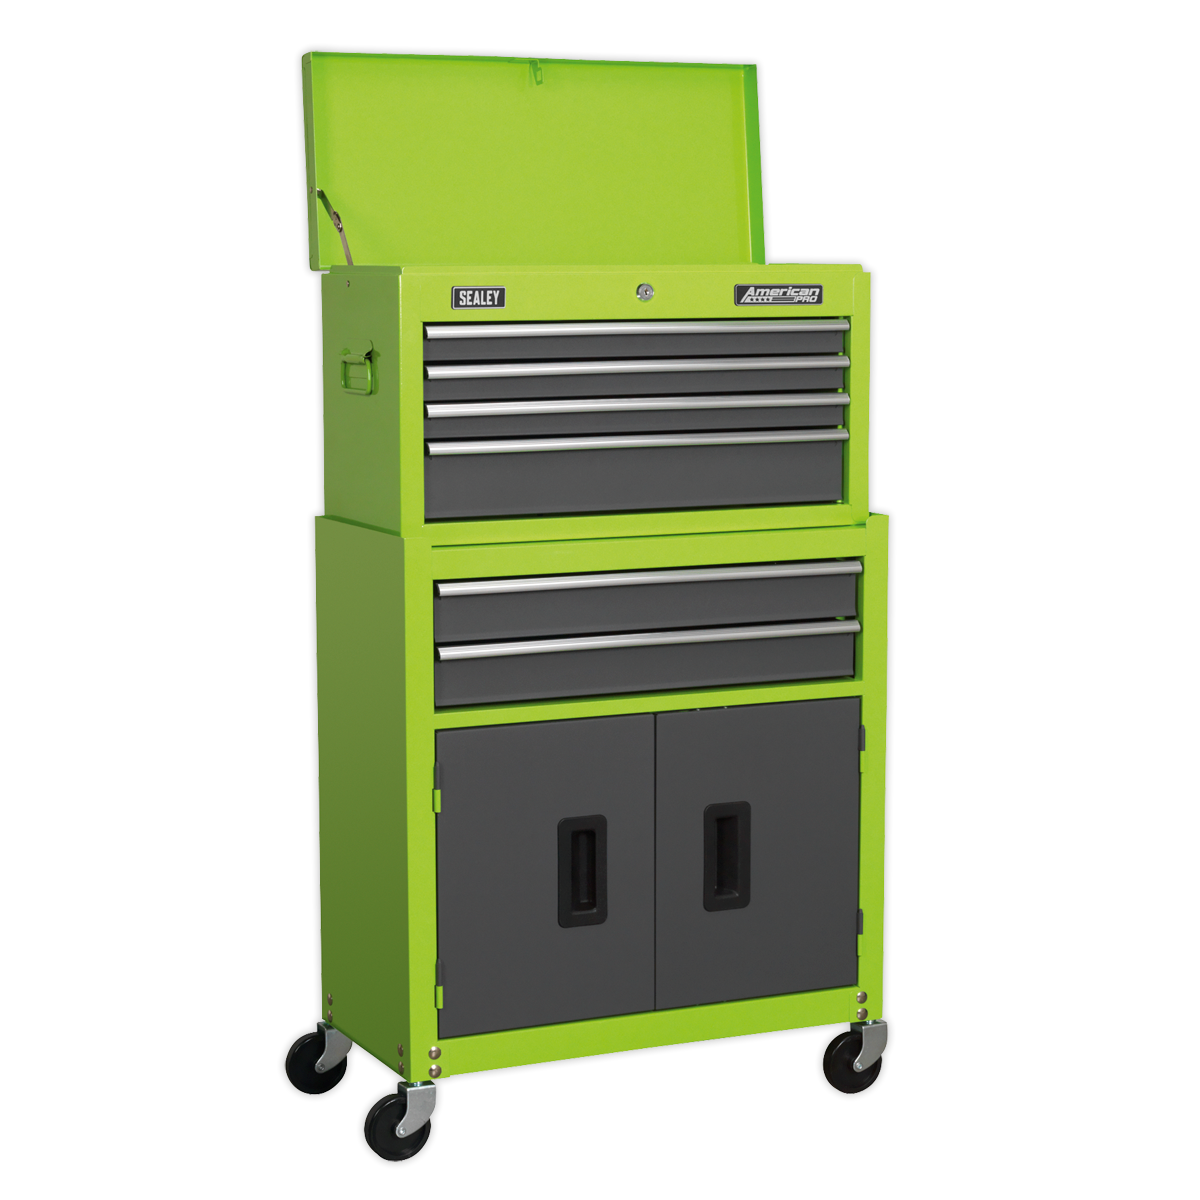 SEALEY TOPCHEST/ROLLCAB 6 DRAWER WITH BALL BEARING SLIDES HI-VIS GREEN